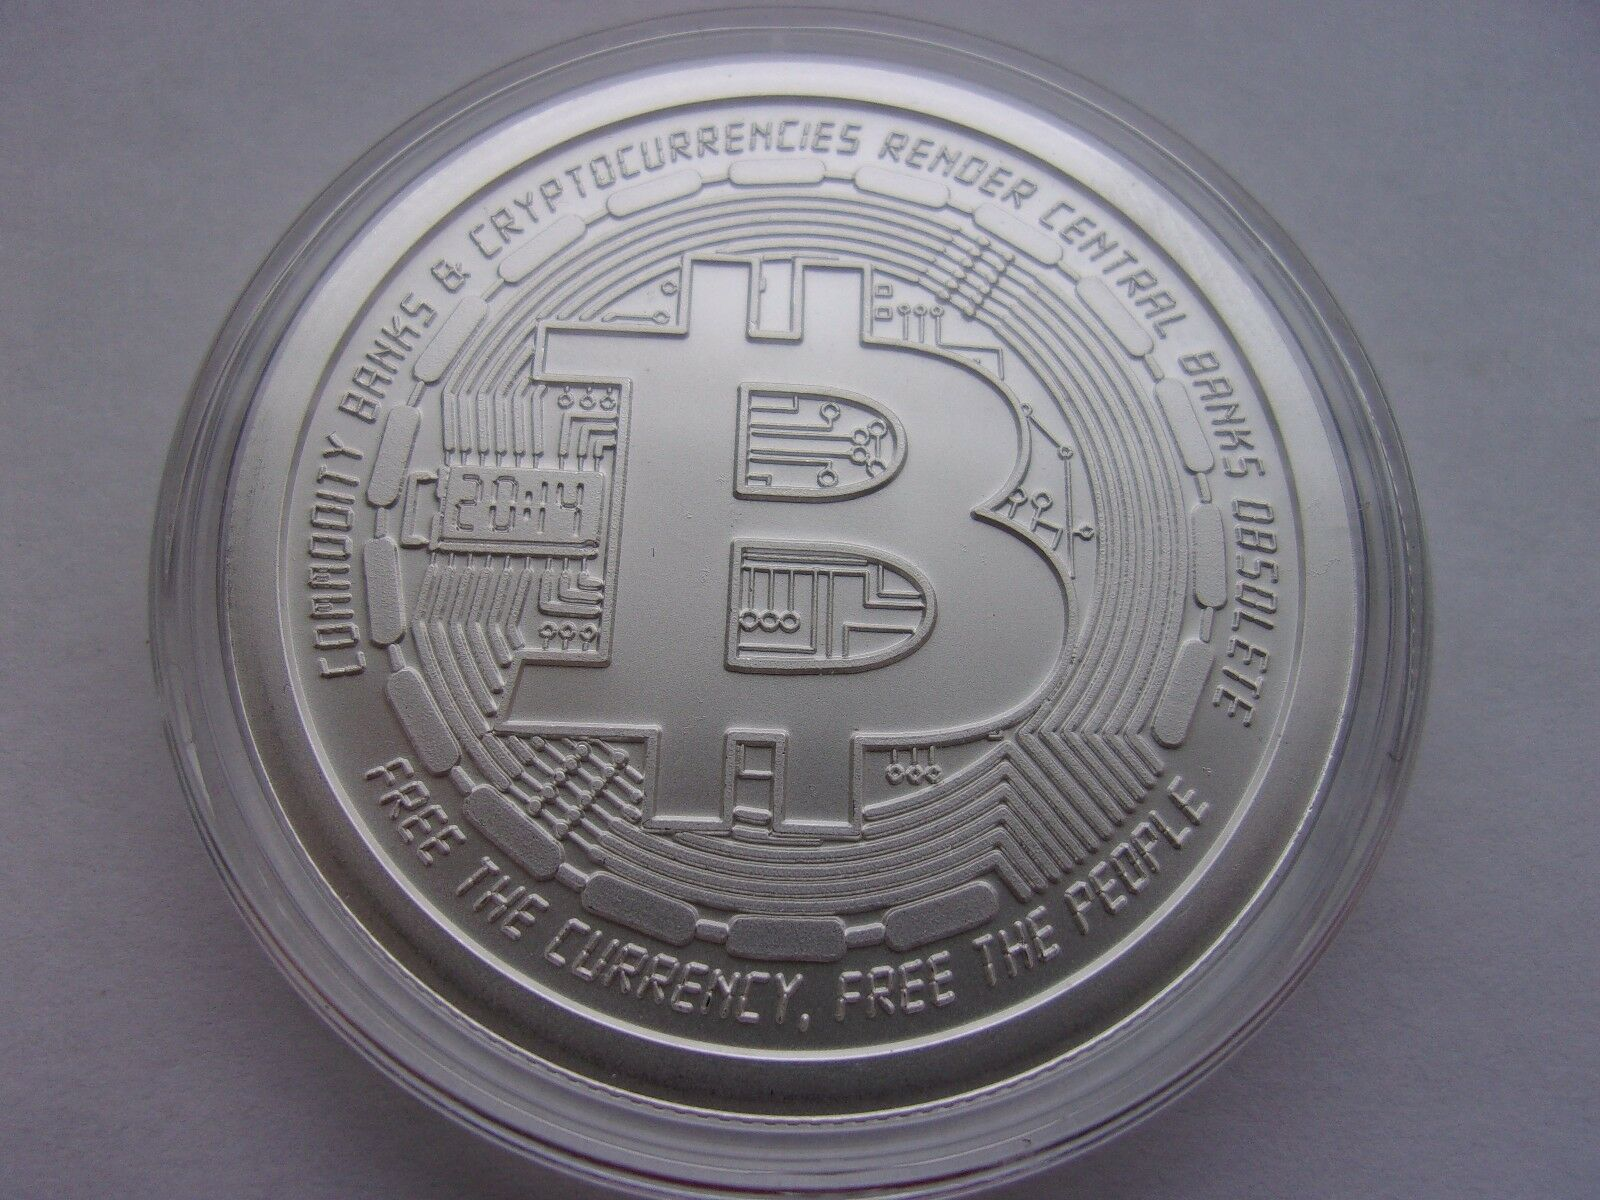 Bitcoin 1 Oz 999 Silver Bitcoin Commemorative Coin